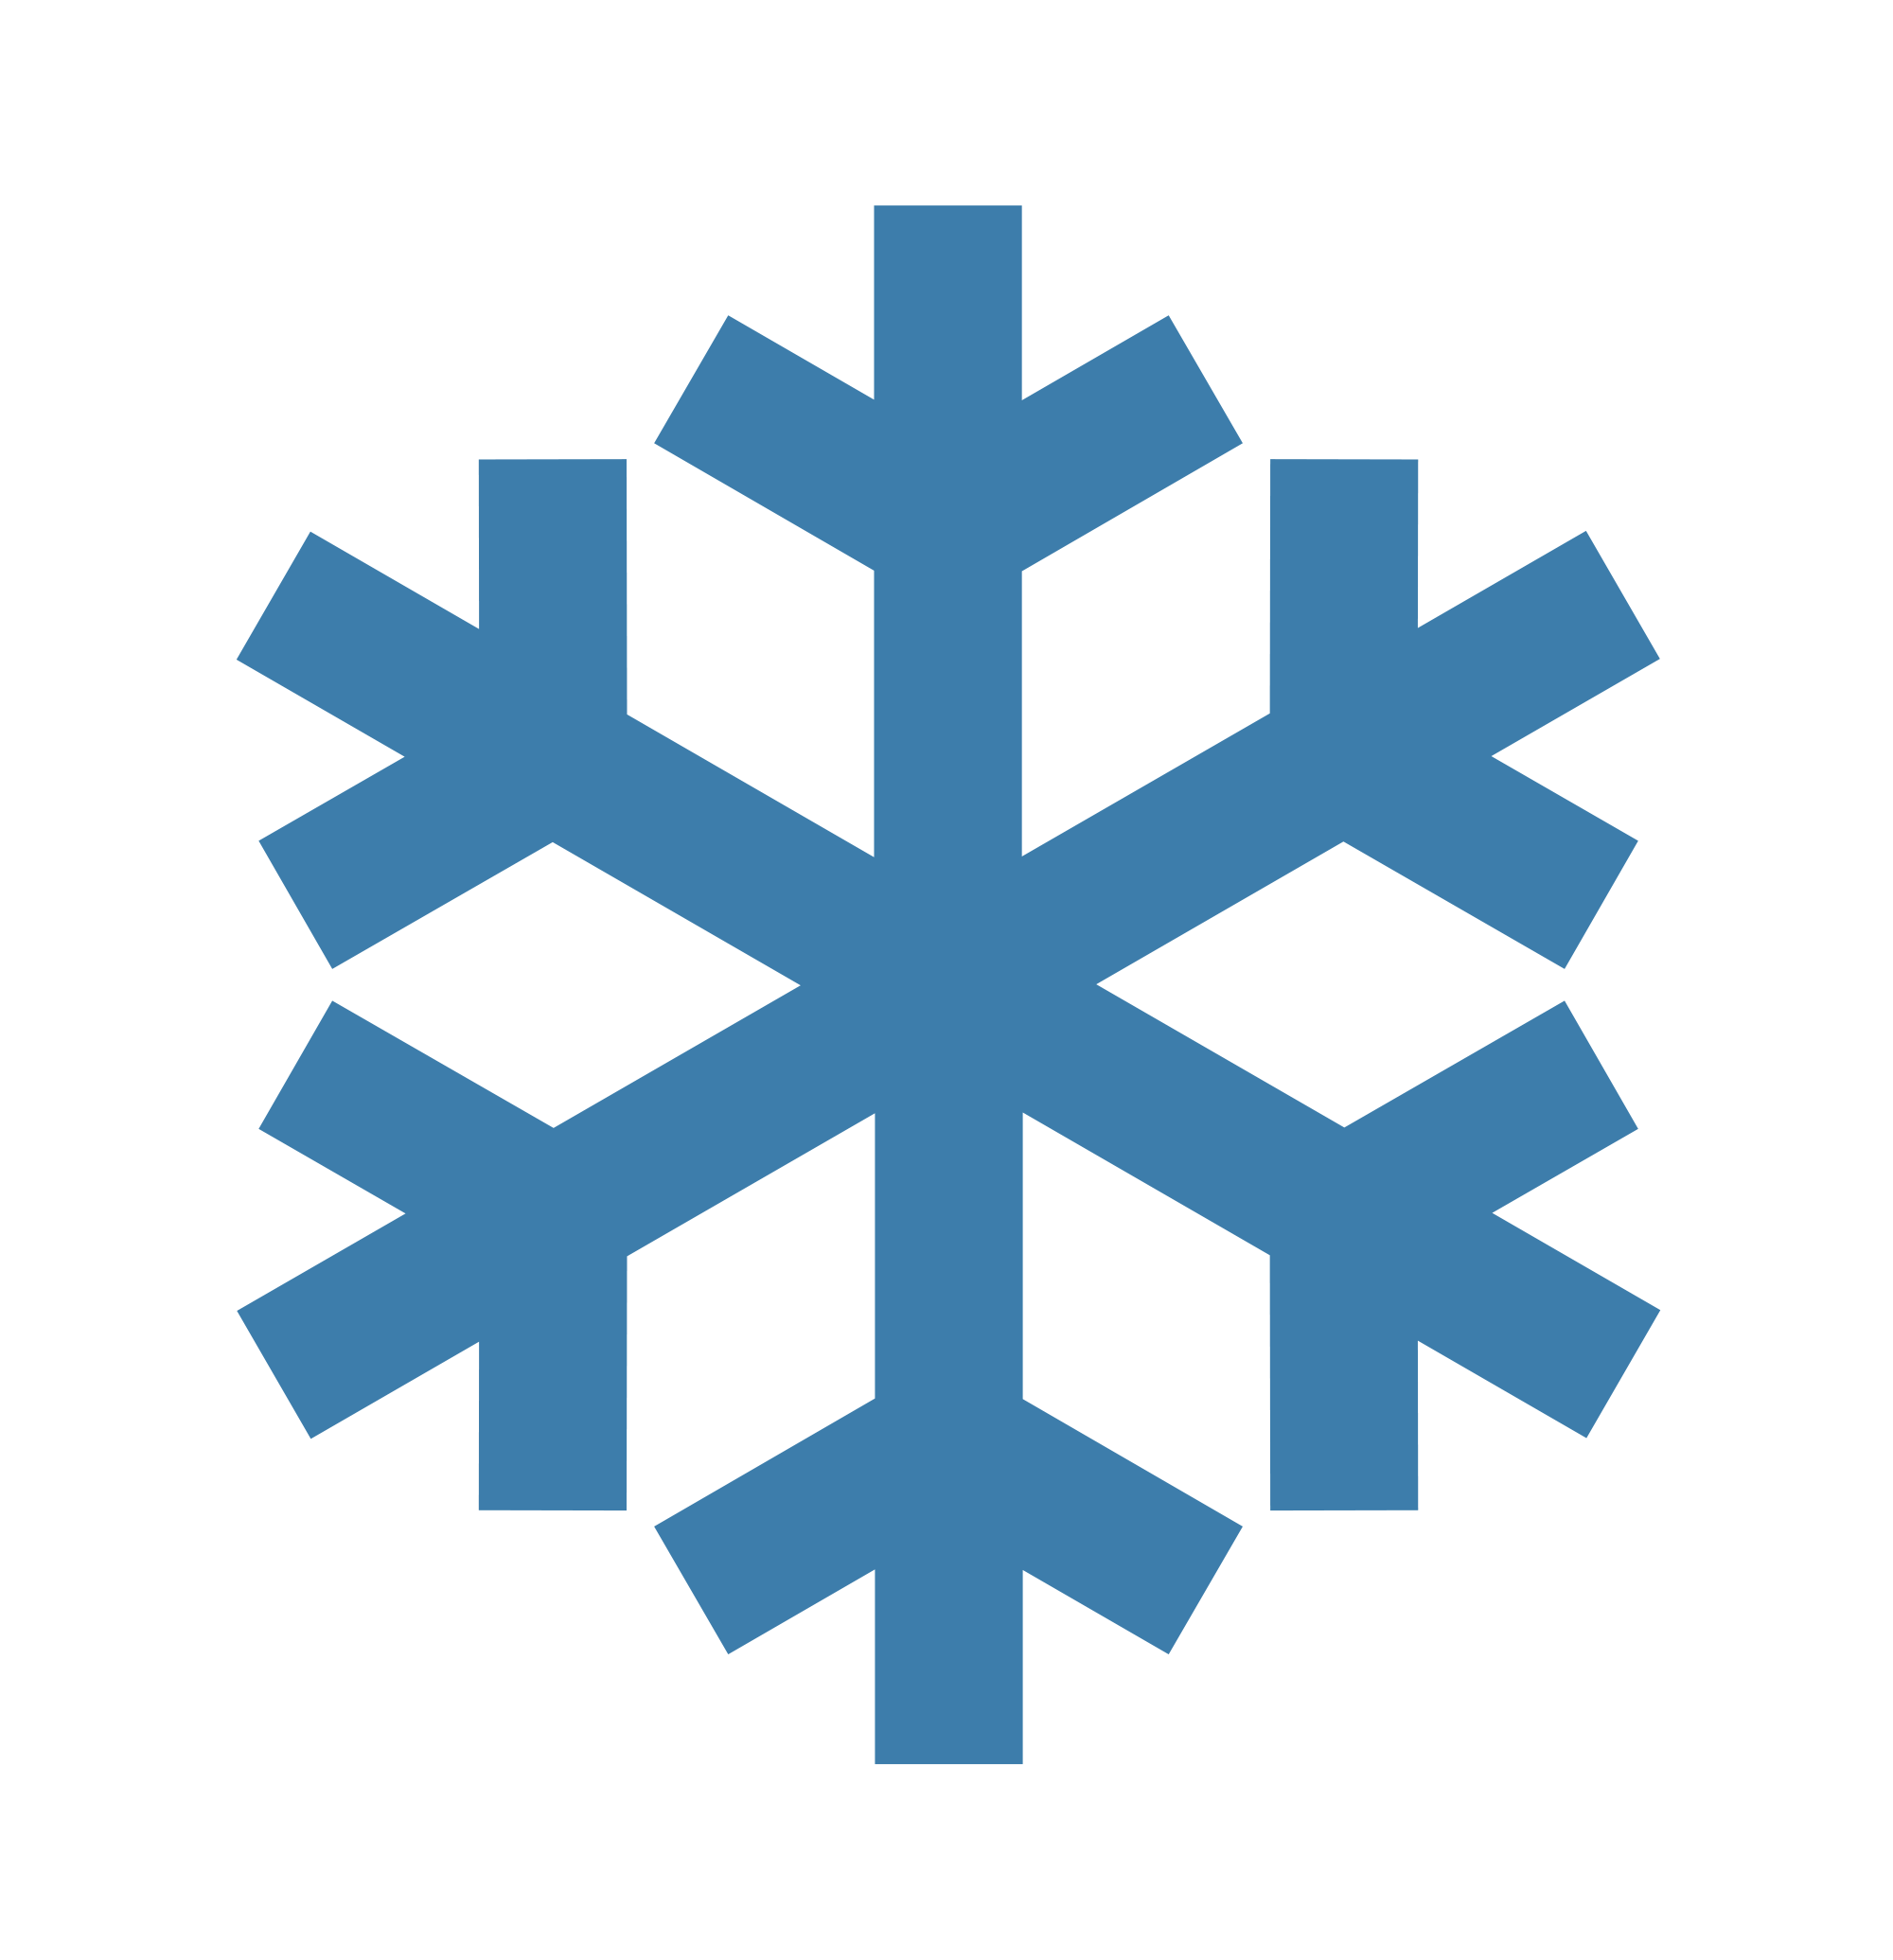 File snow flake wikimedia. Frost transparent svg clip art library download